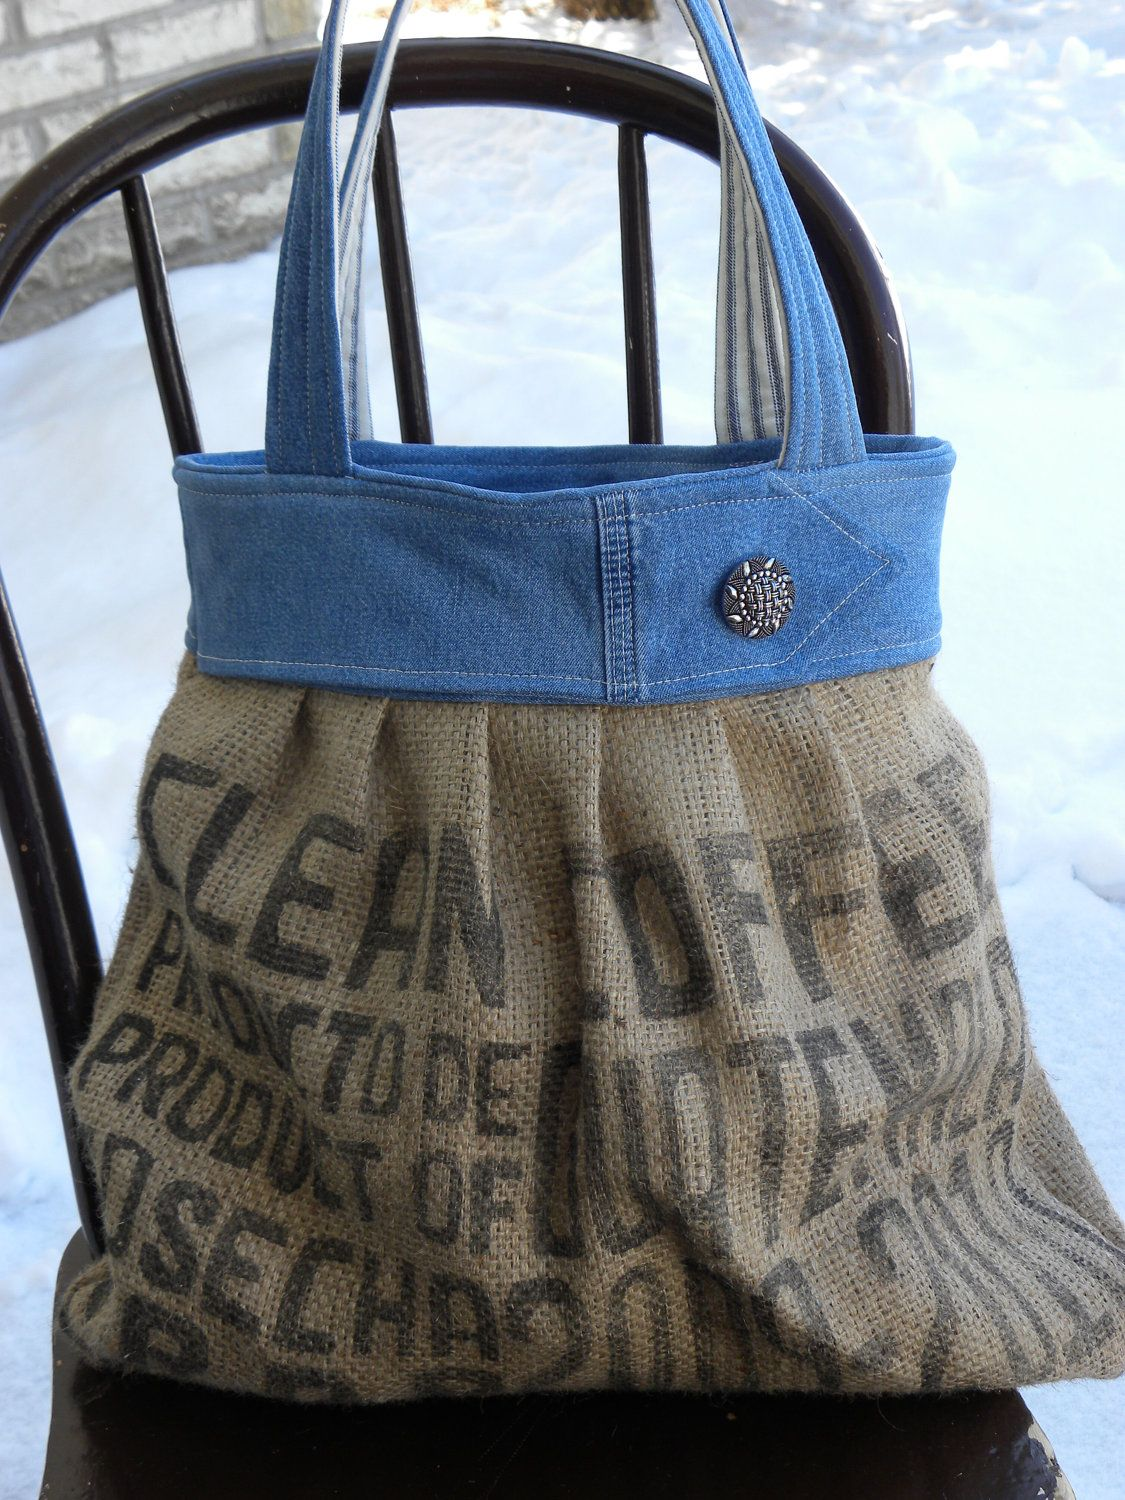 Burlap and Denim Bag - another great idea!! I have plenty of old jeans I could so do this!